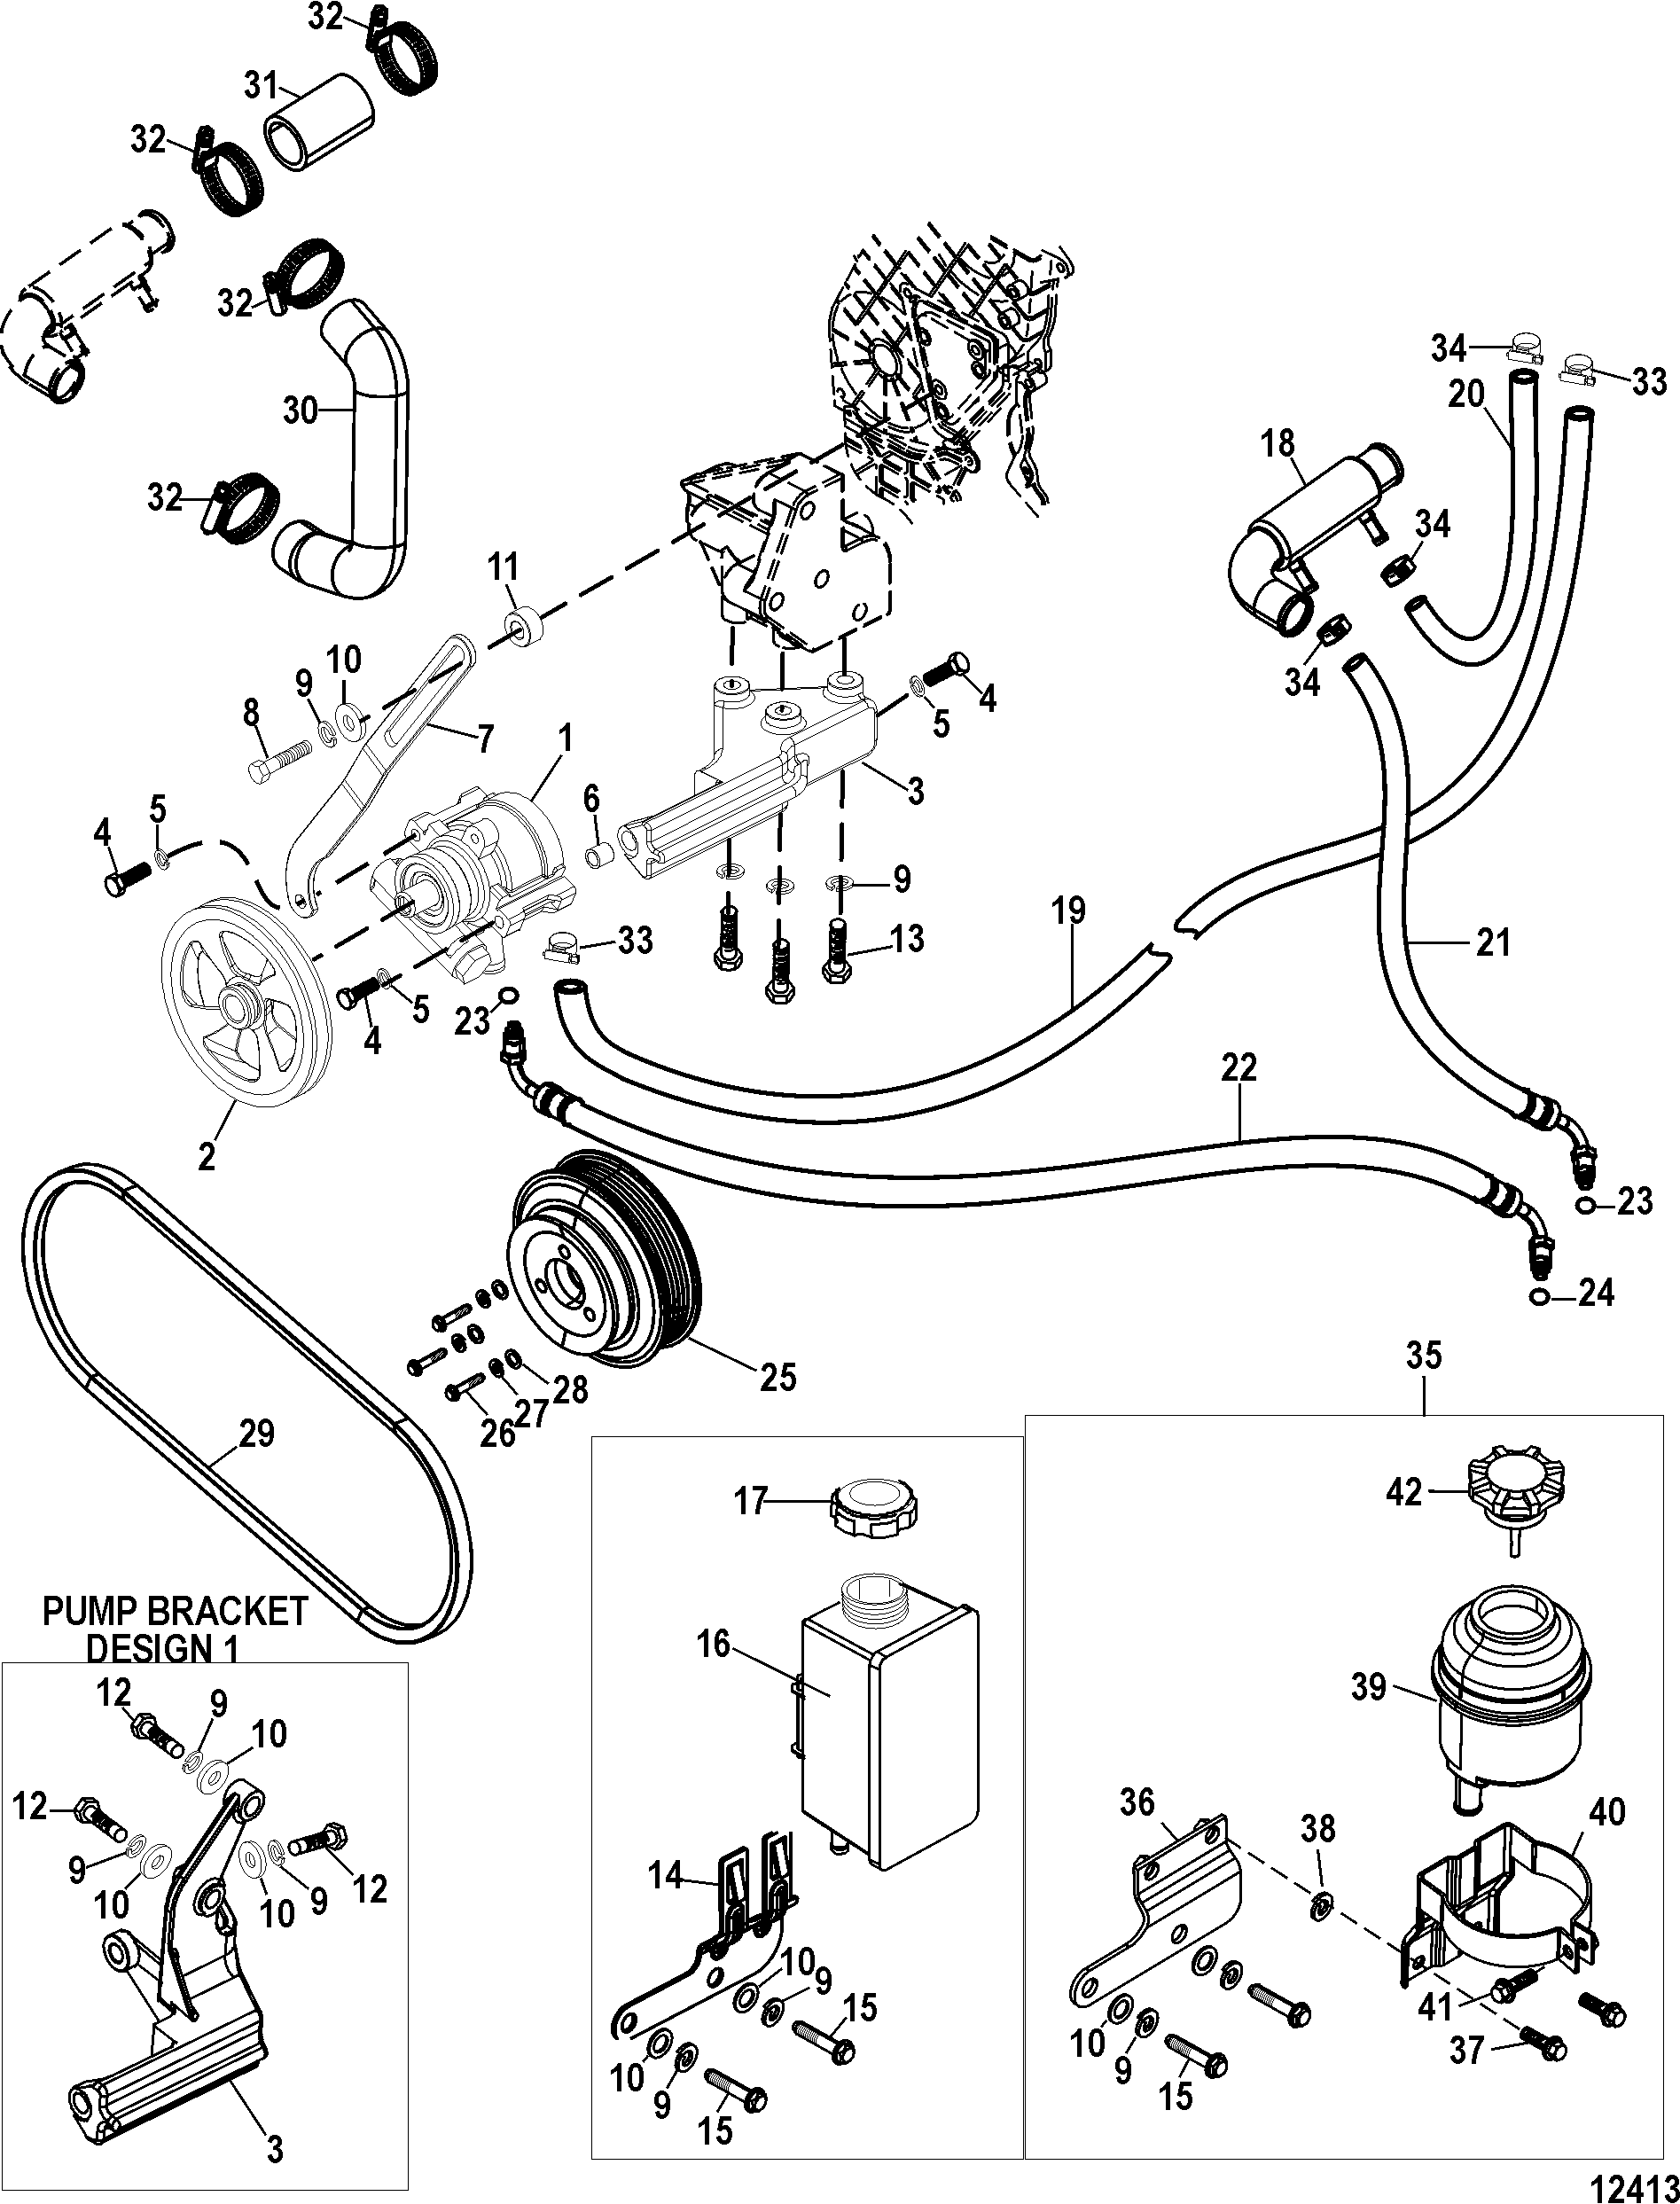 Power Steering Components FOR MERCRUISER / MIE CUMMINS